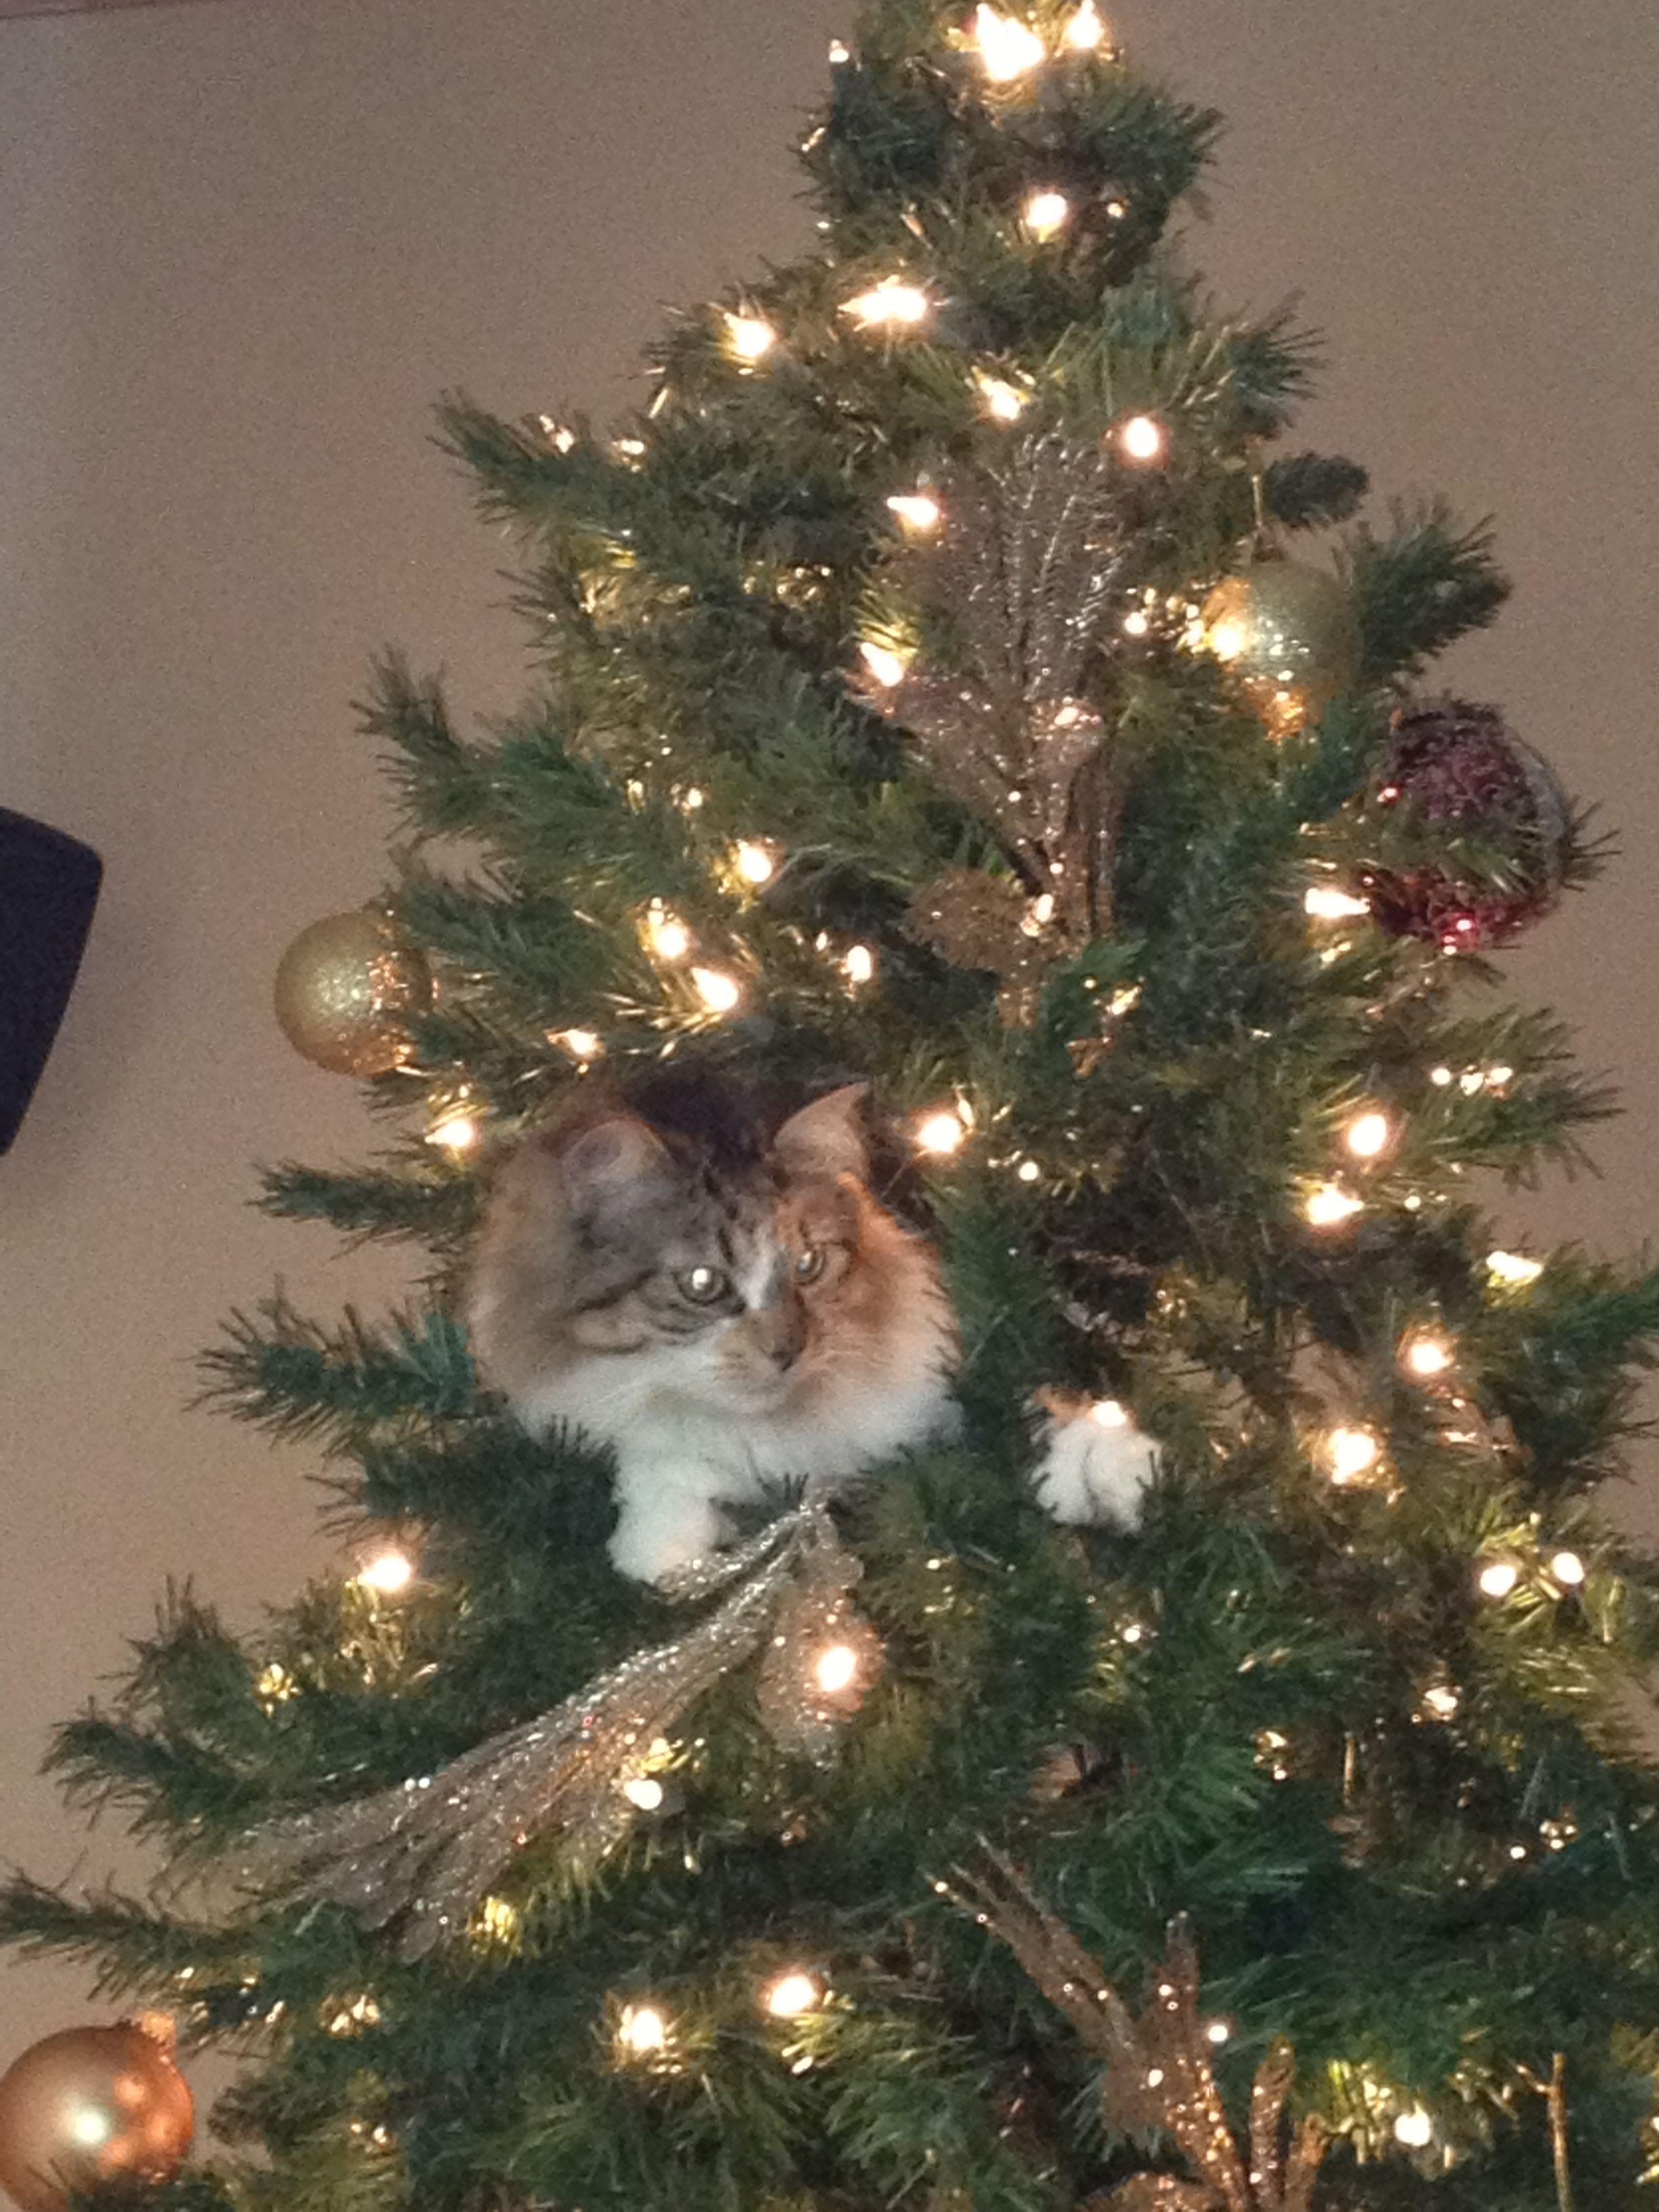 Our silly cat! Gets excited every year when we put this tree up!